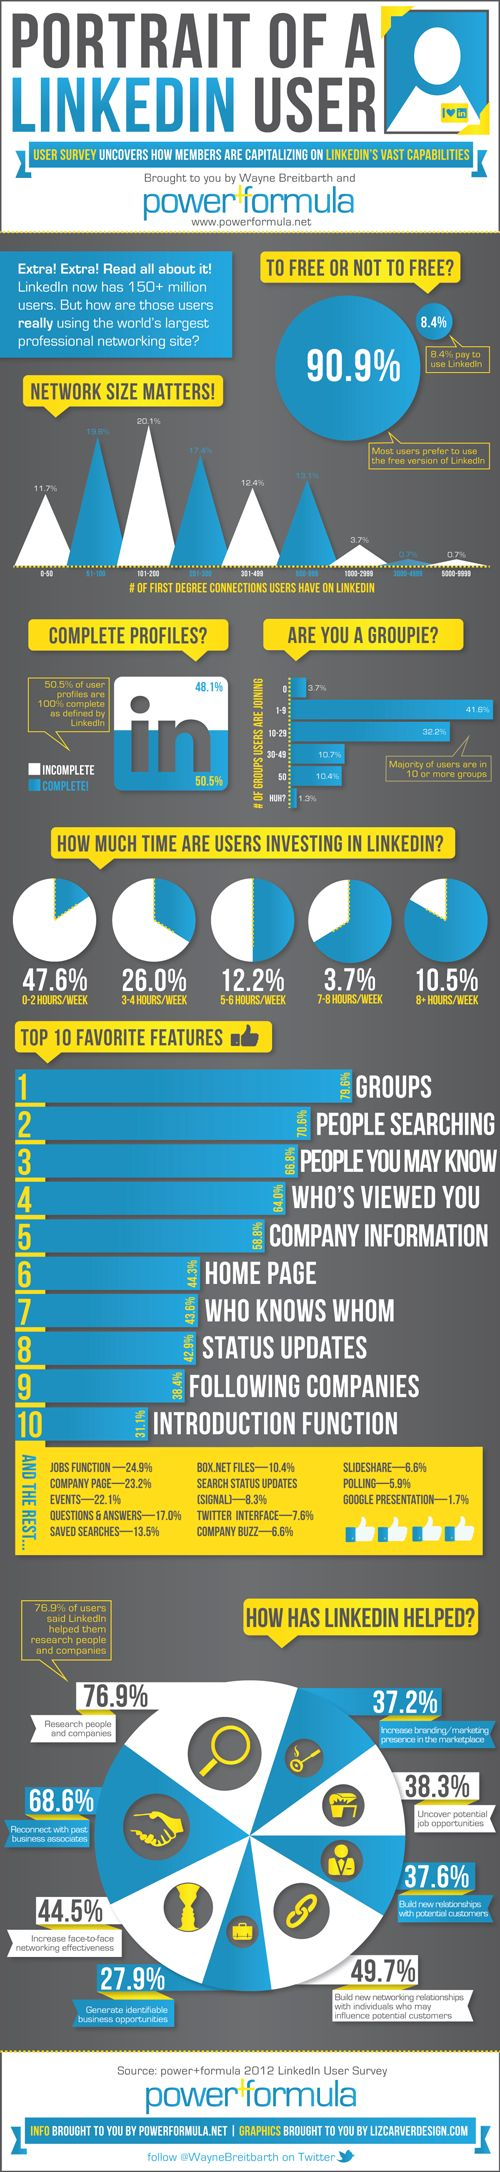 How to Harness the Power of LinkedIn - #infographic